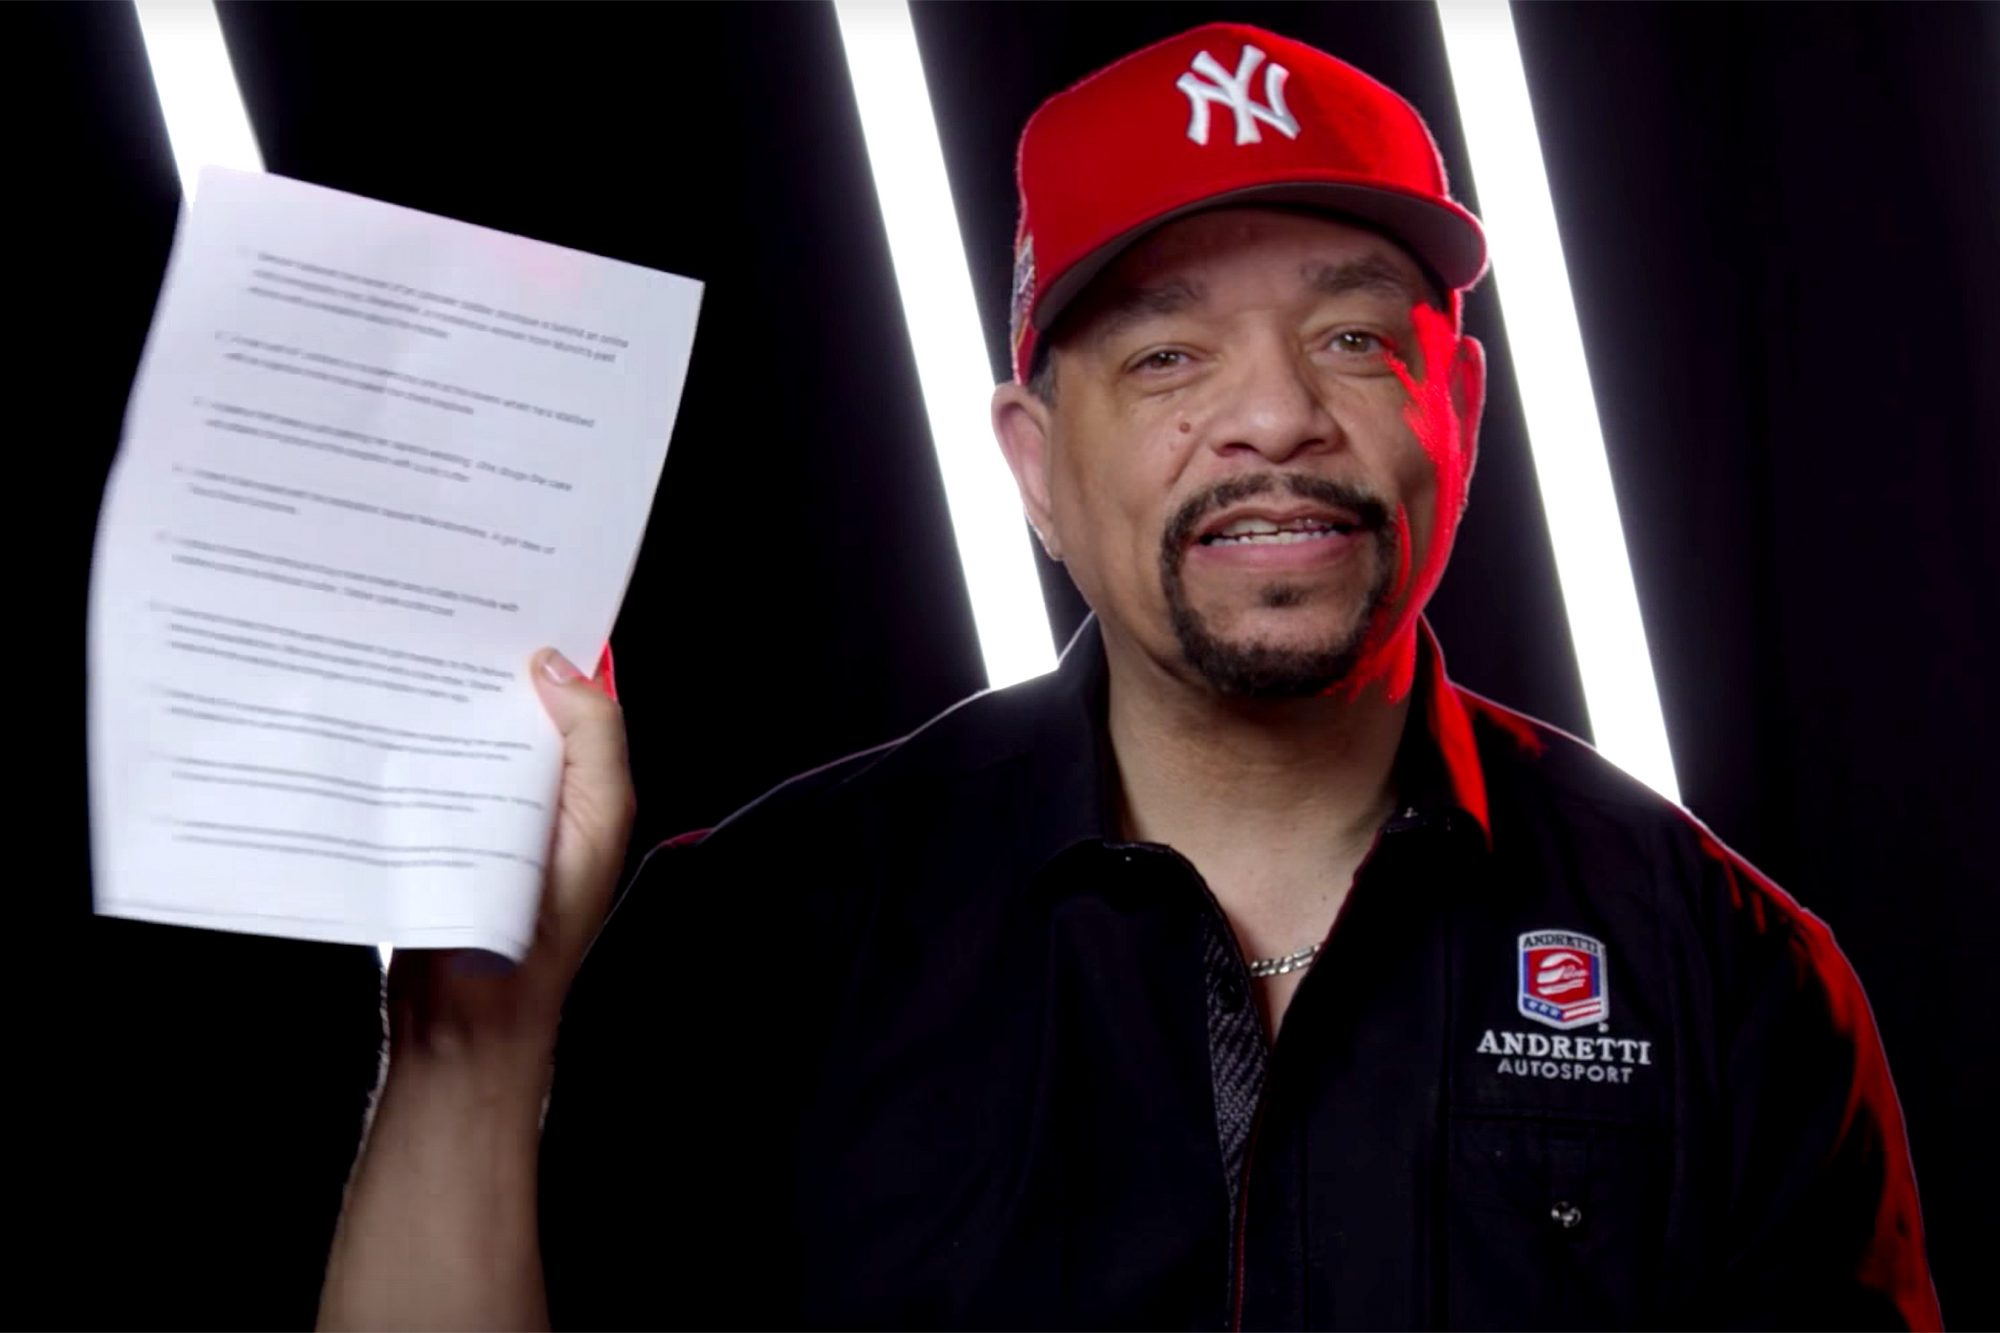 Ice T Law & Order Quiz